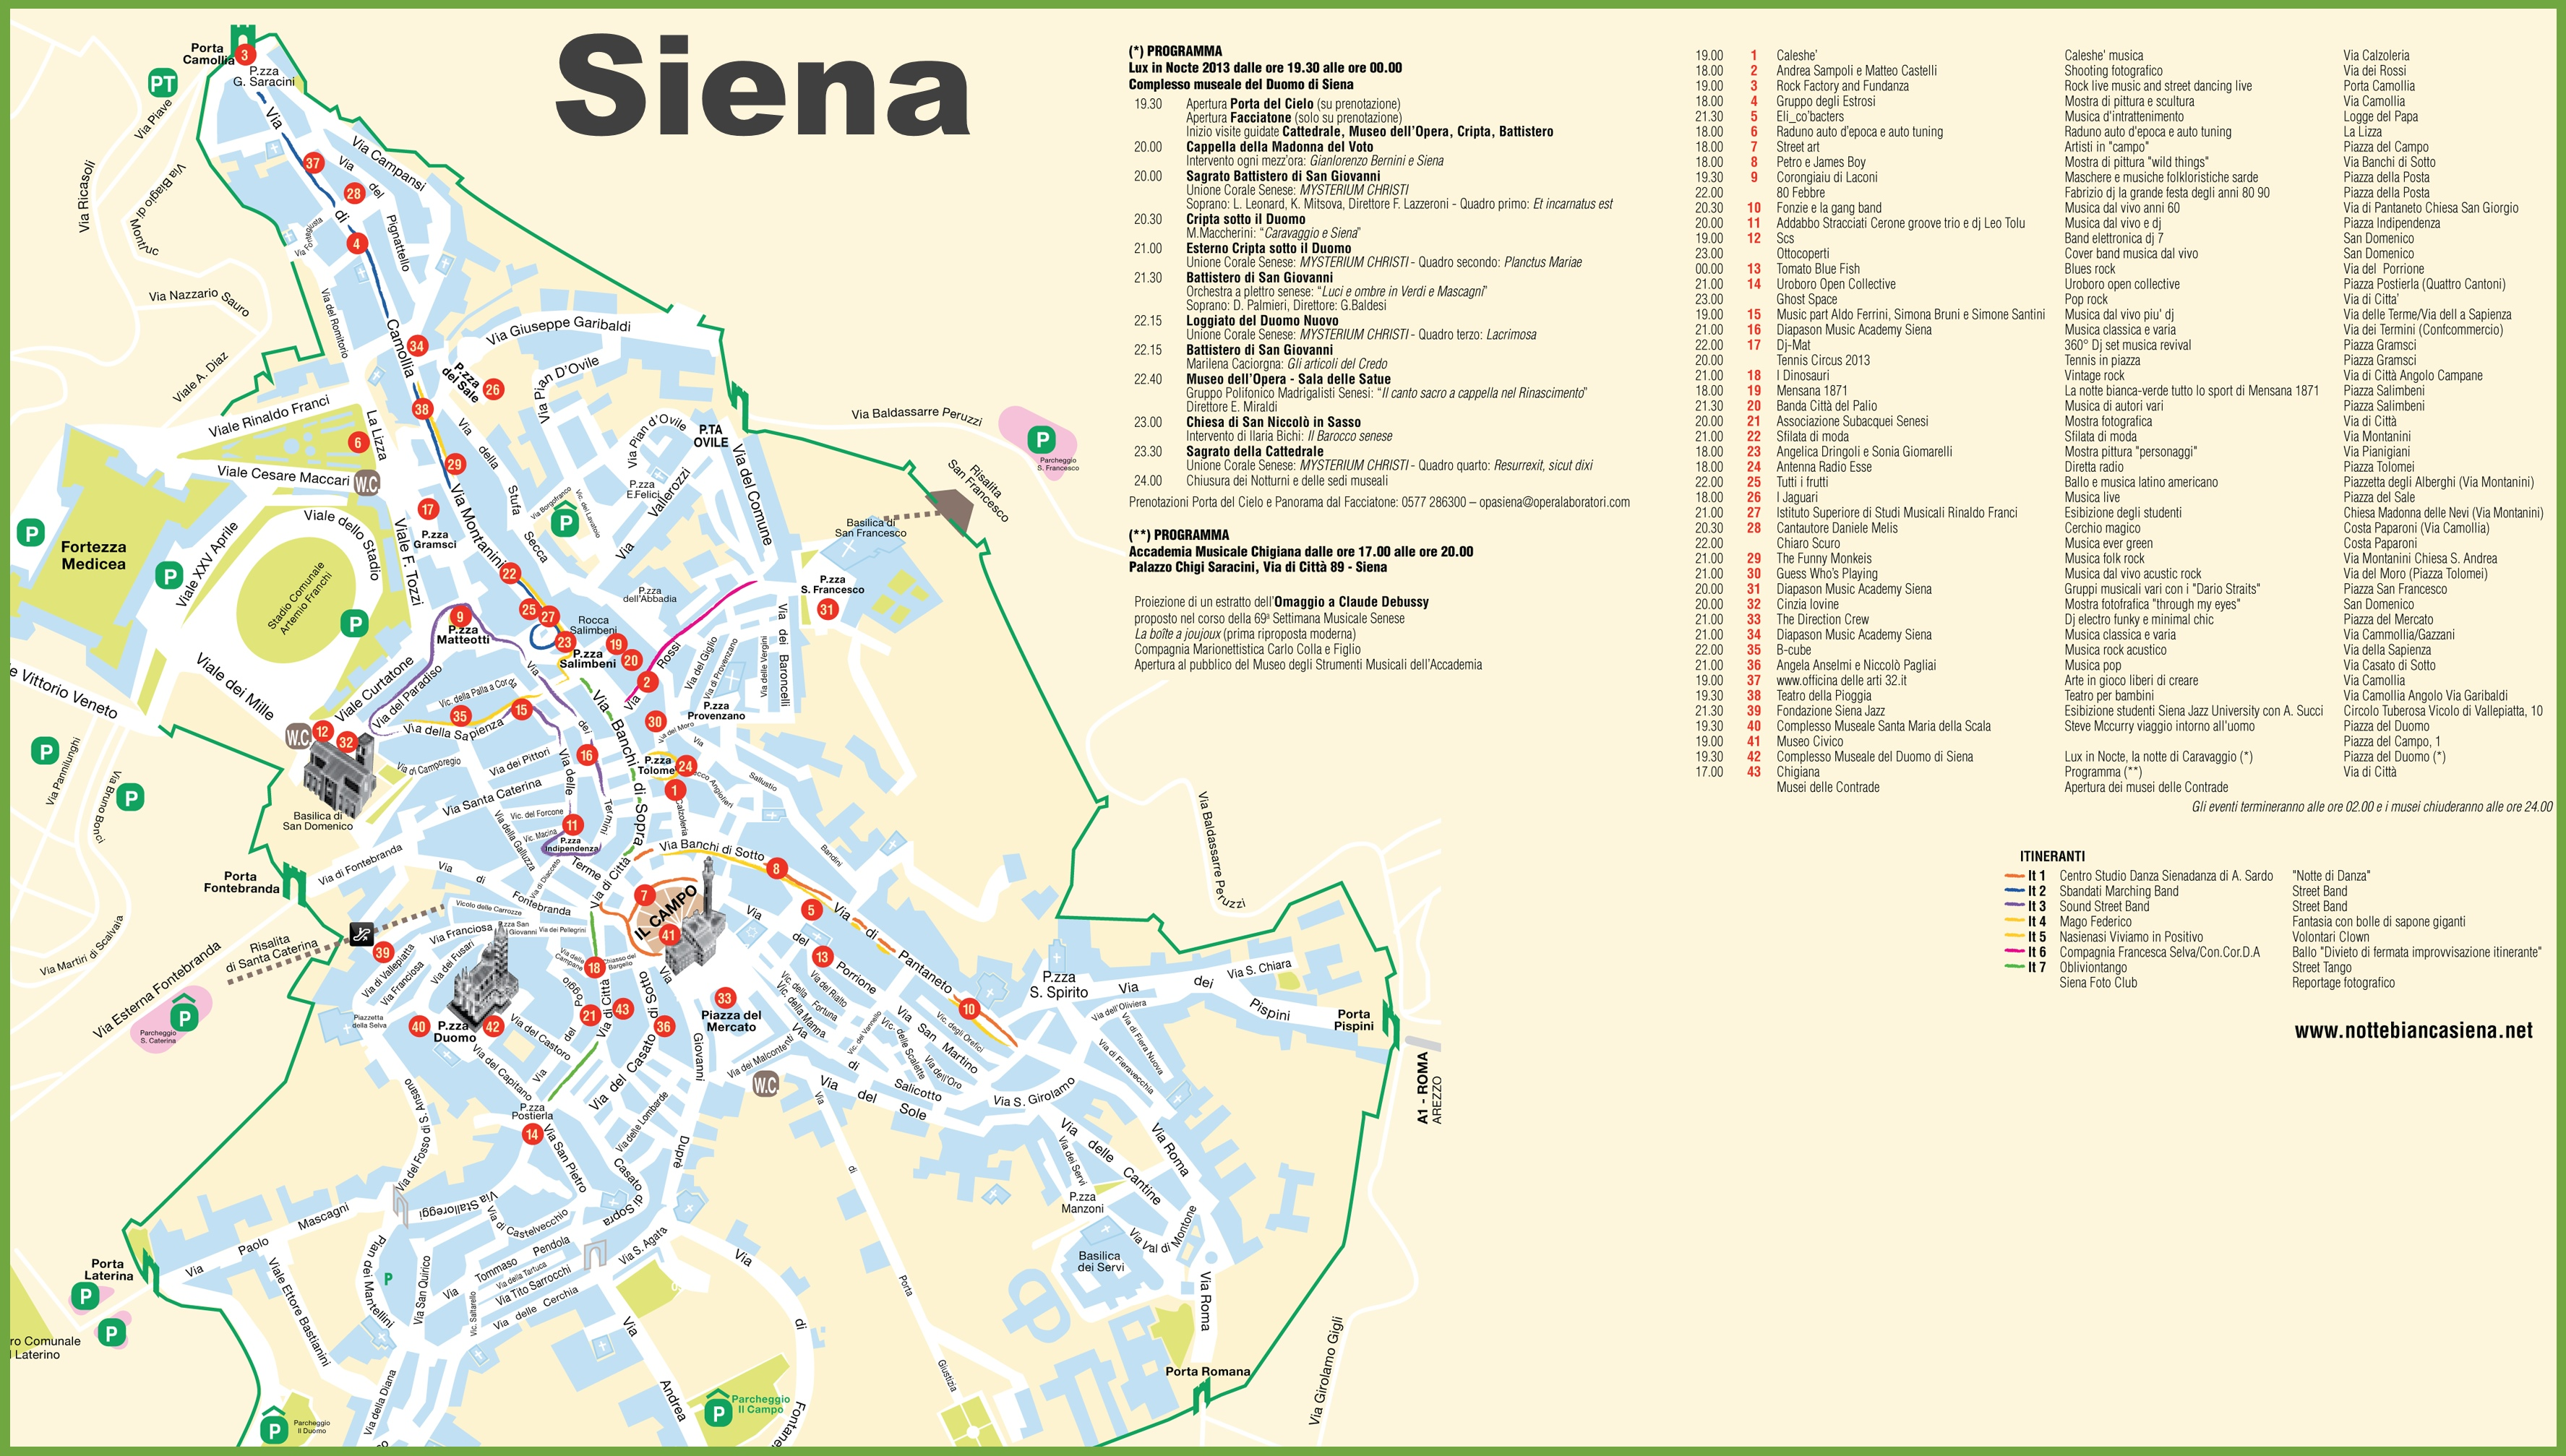 Siena tourist attractions map – Italy Tourist Attractions Map